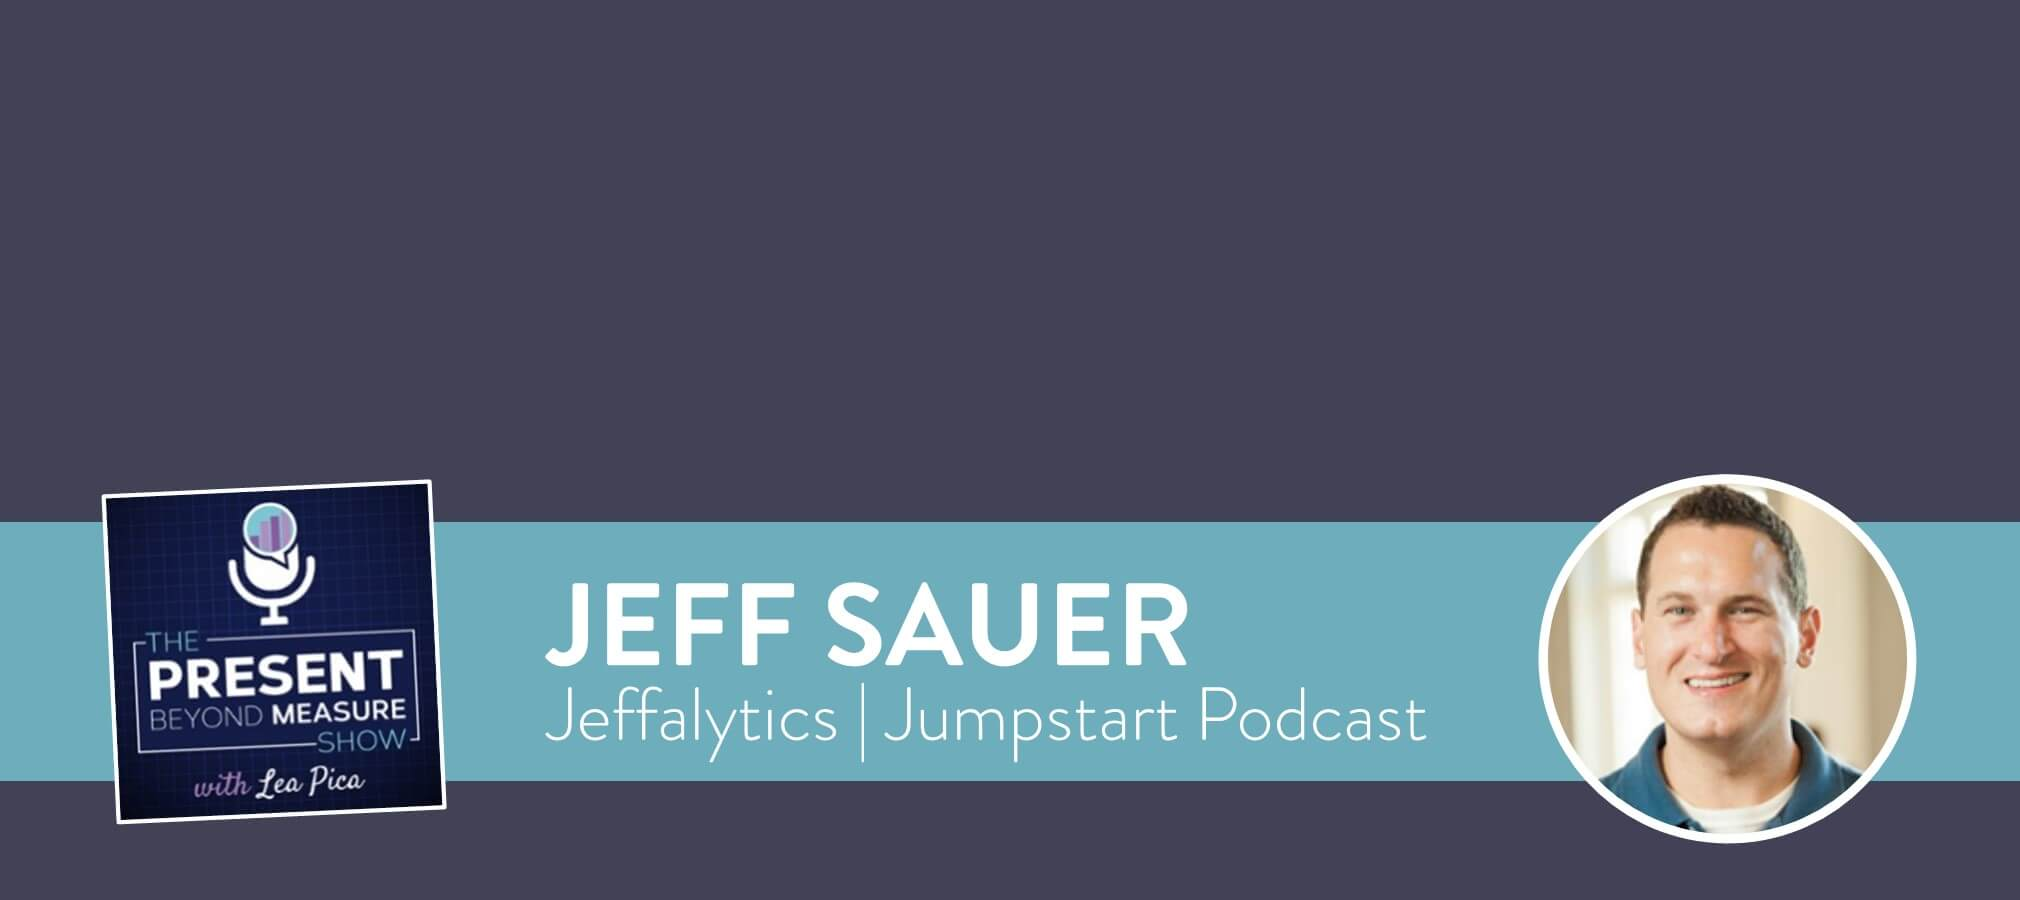 Inspiring Your Analytics Stakeholders to Take Action with Jeff Sauer [Podcast]